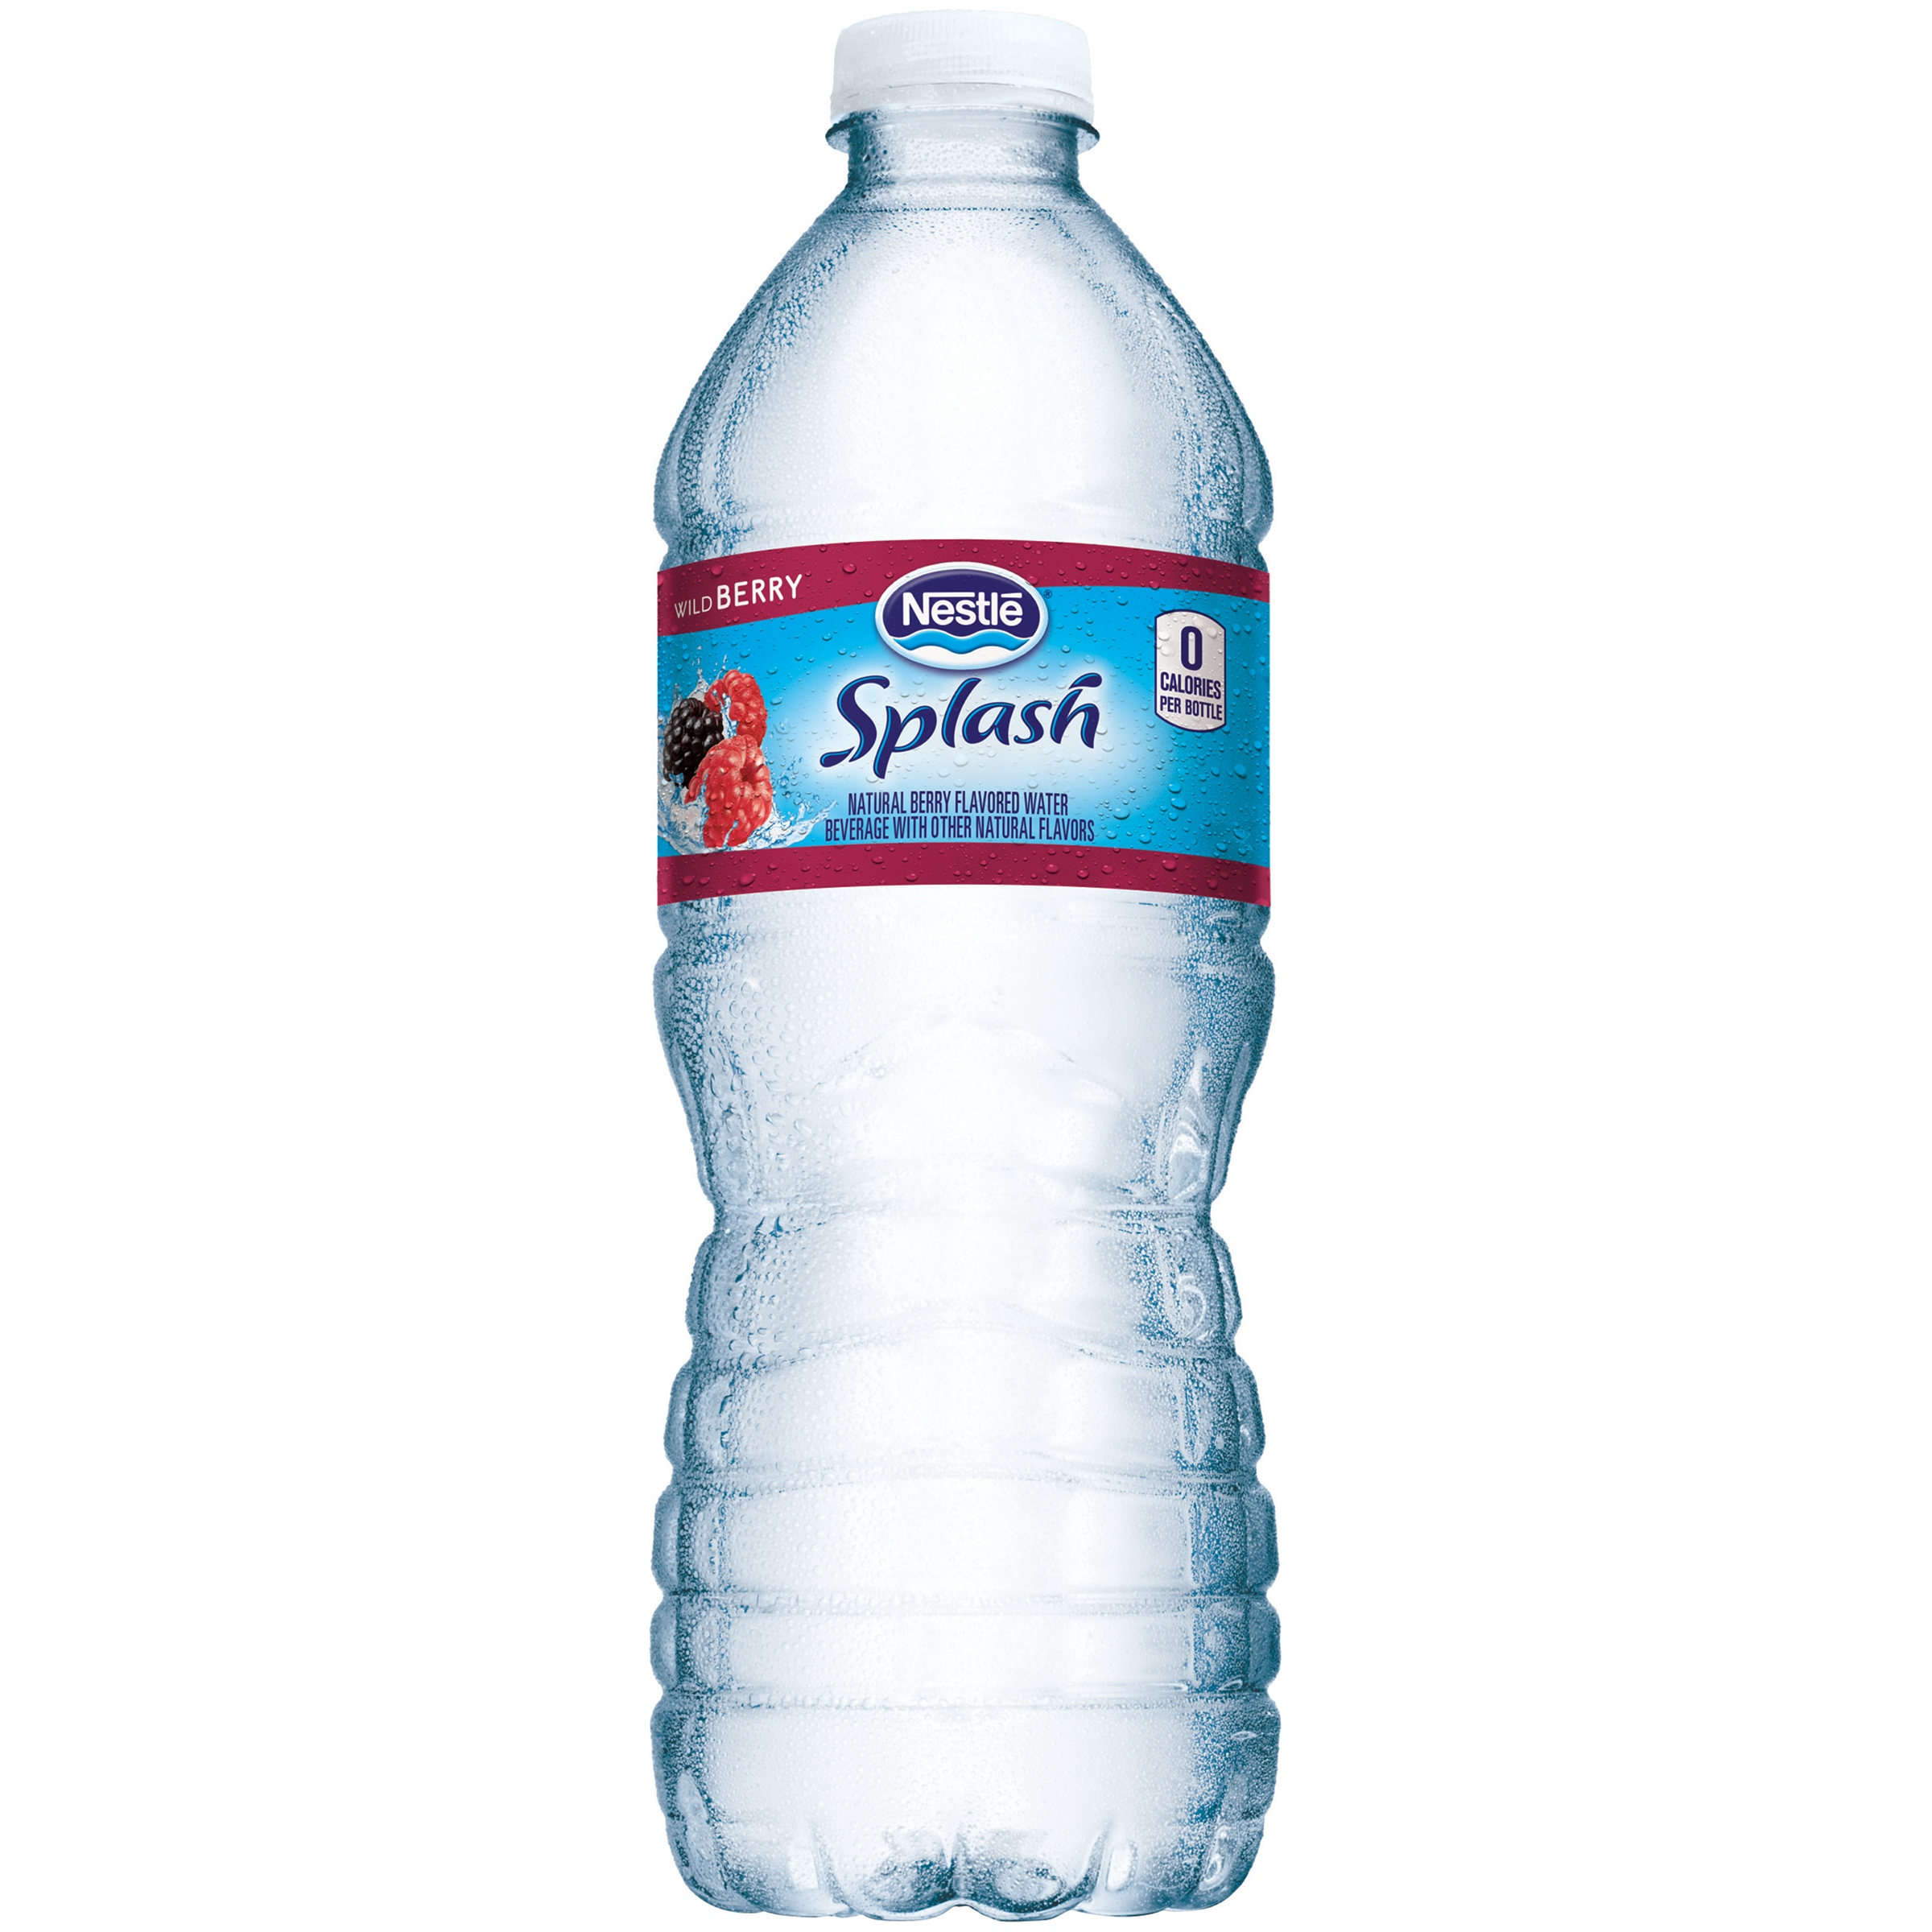 NESTLE SPLASH Water Beverages With Natural Fruit Flavors, Wild Berry 16.9-ounce plastic bottles (Pack of 24)